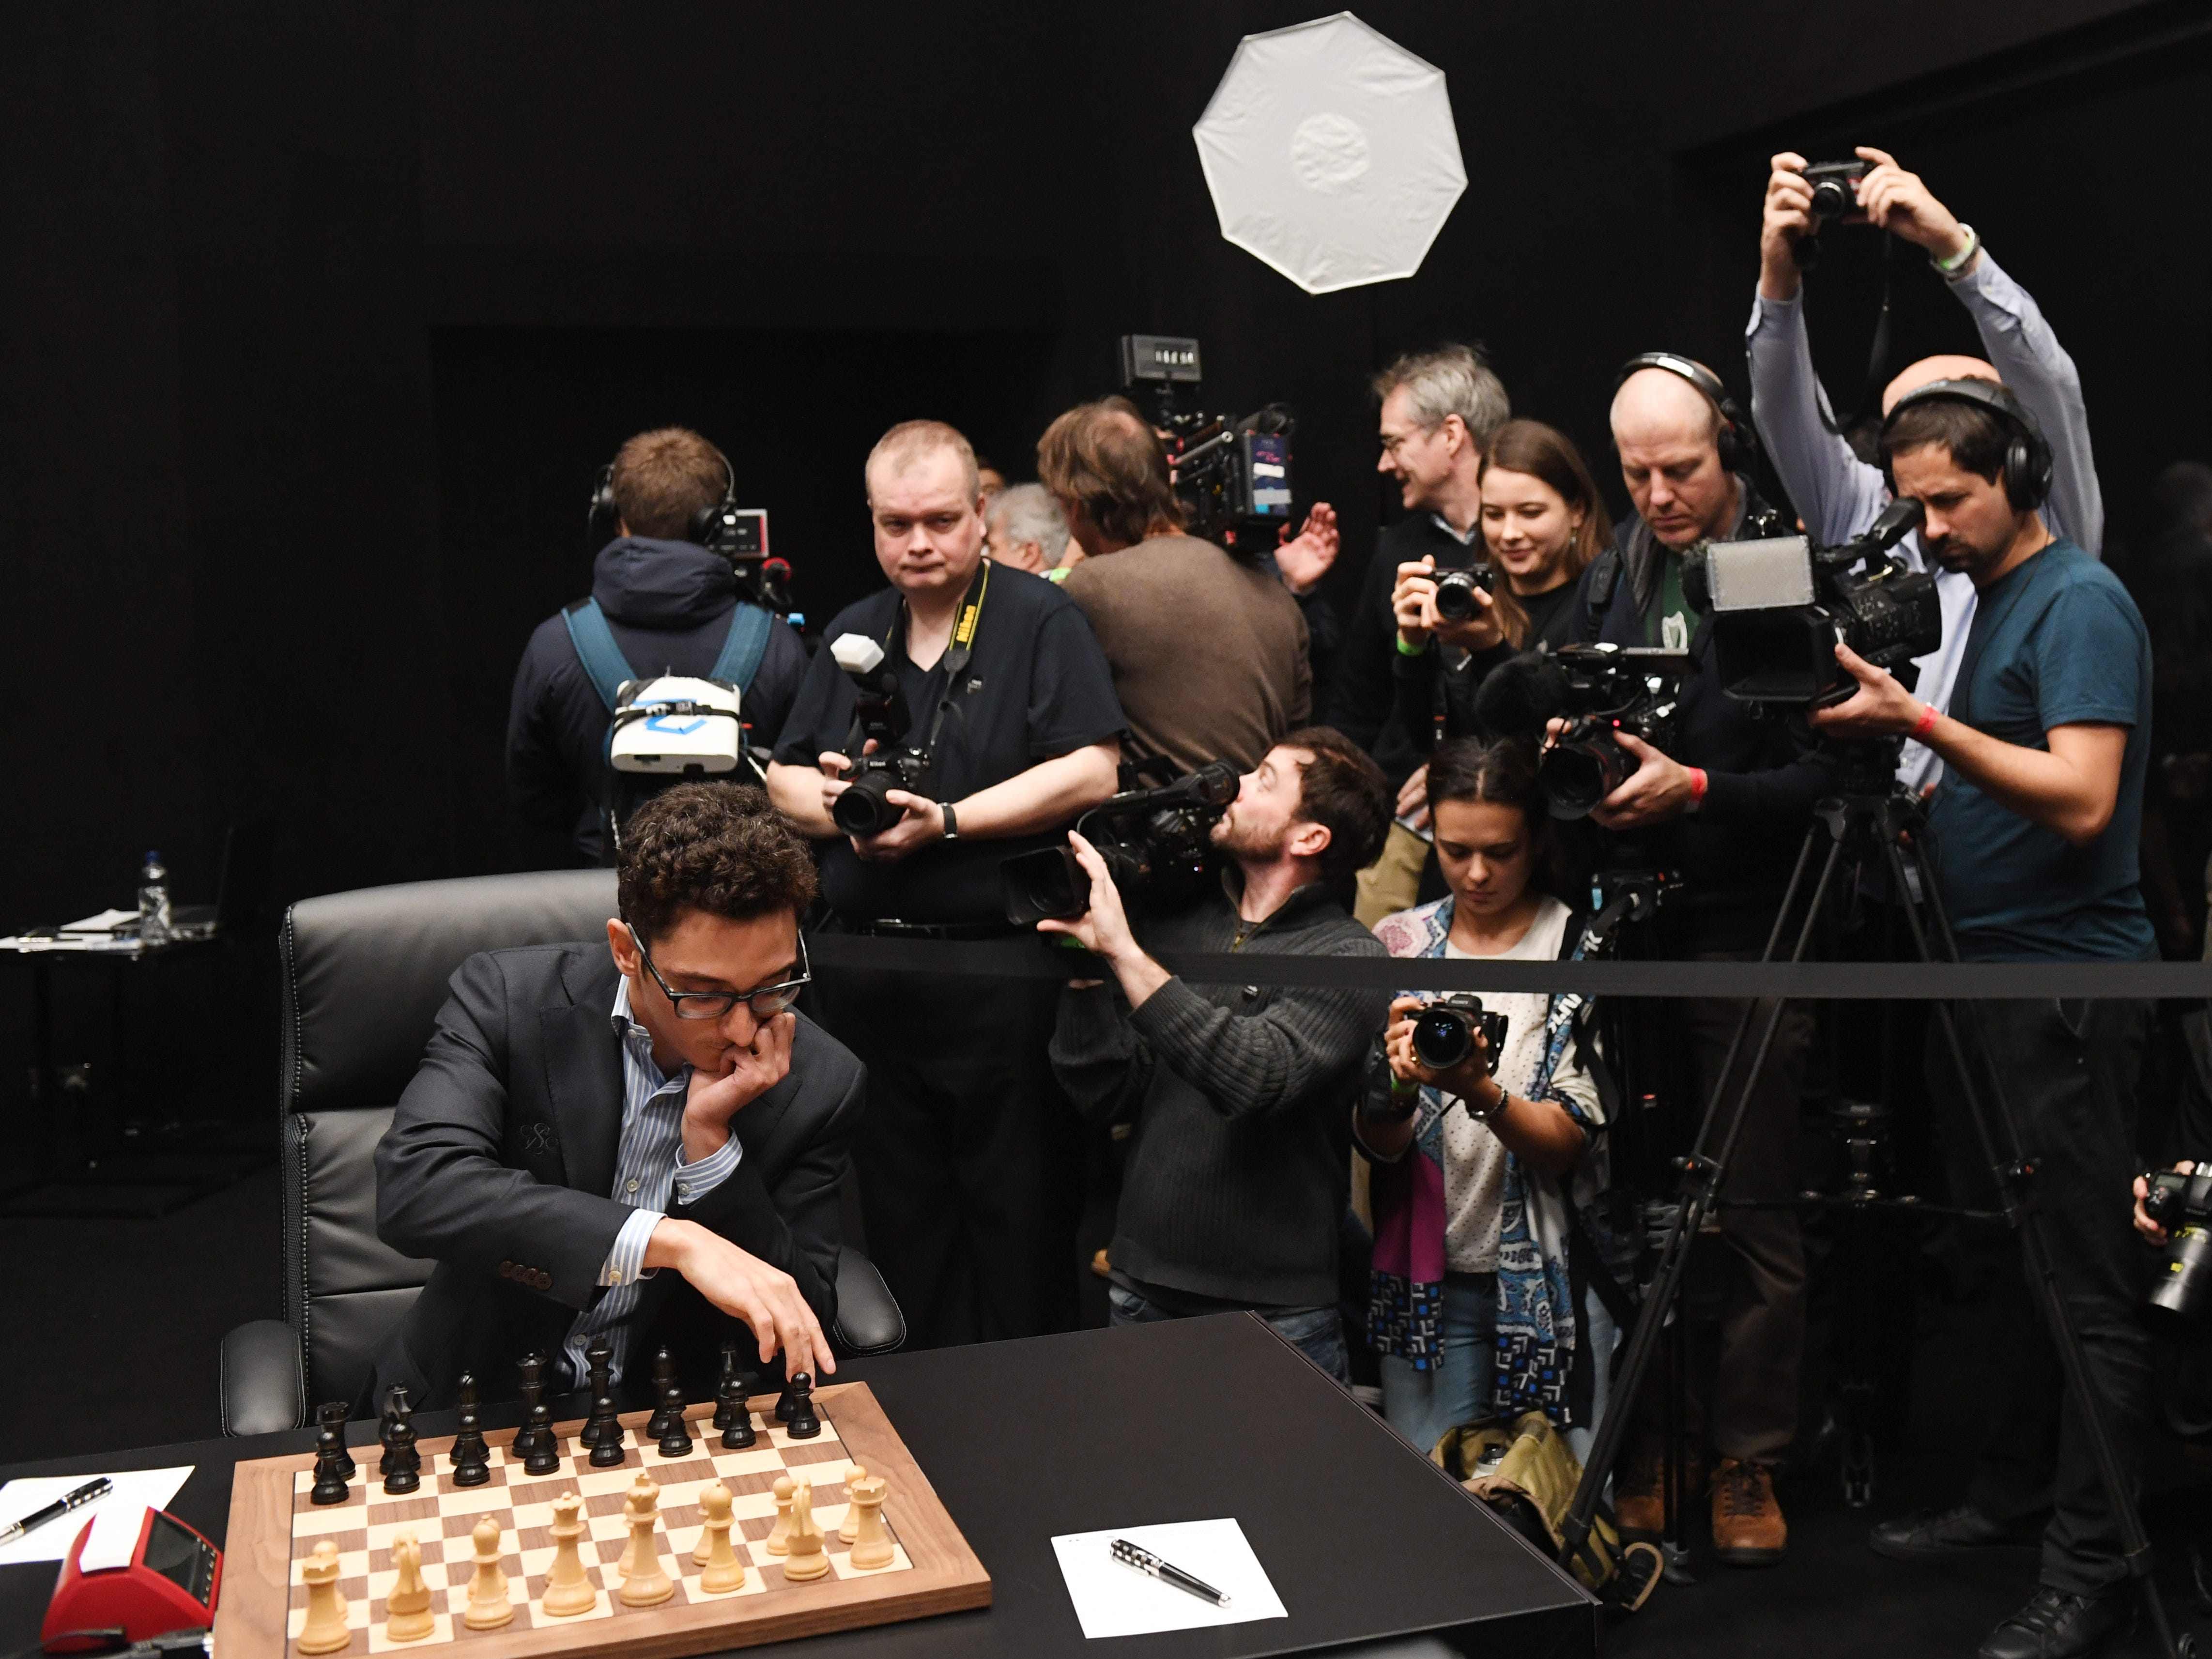 American challenger Fabiano Caruana, left, arranges the board before playing against  reigning chess world champion Magnus Carlsen in their round 11 game during the World Chess Championship, Nov. 24, 2018, in London.